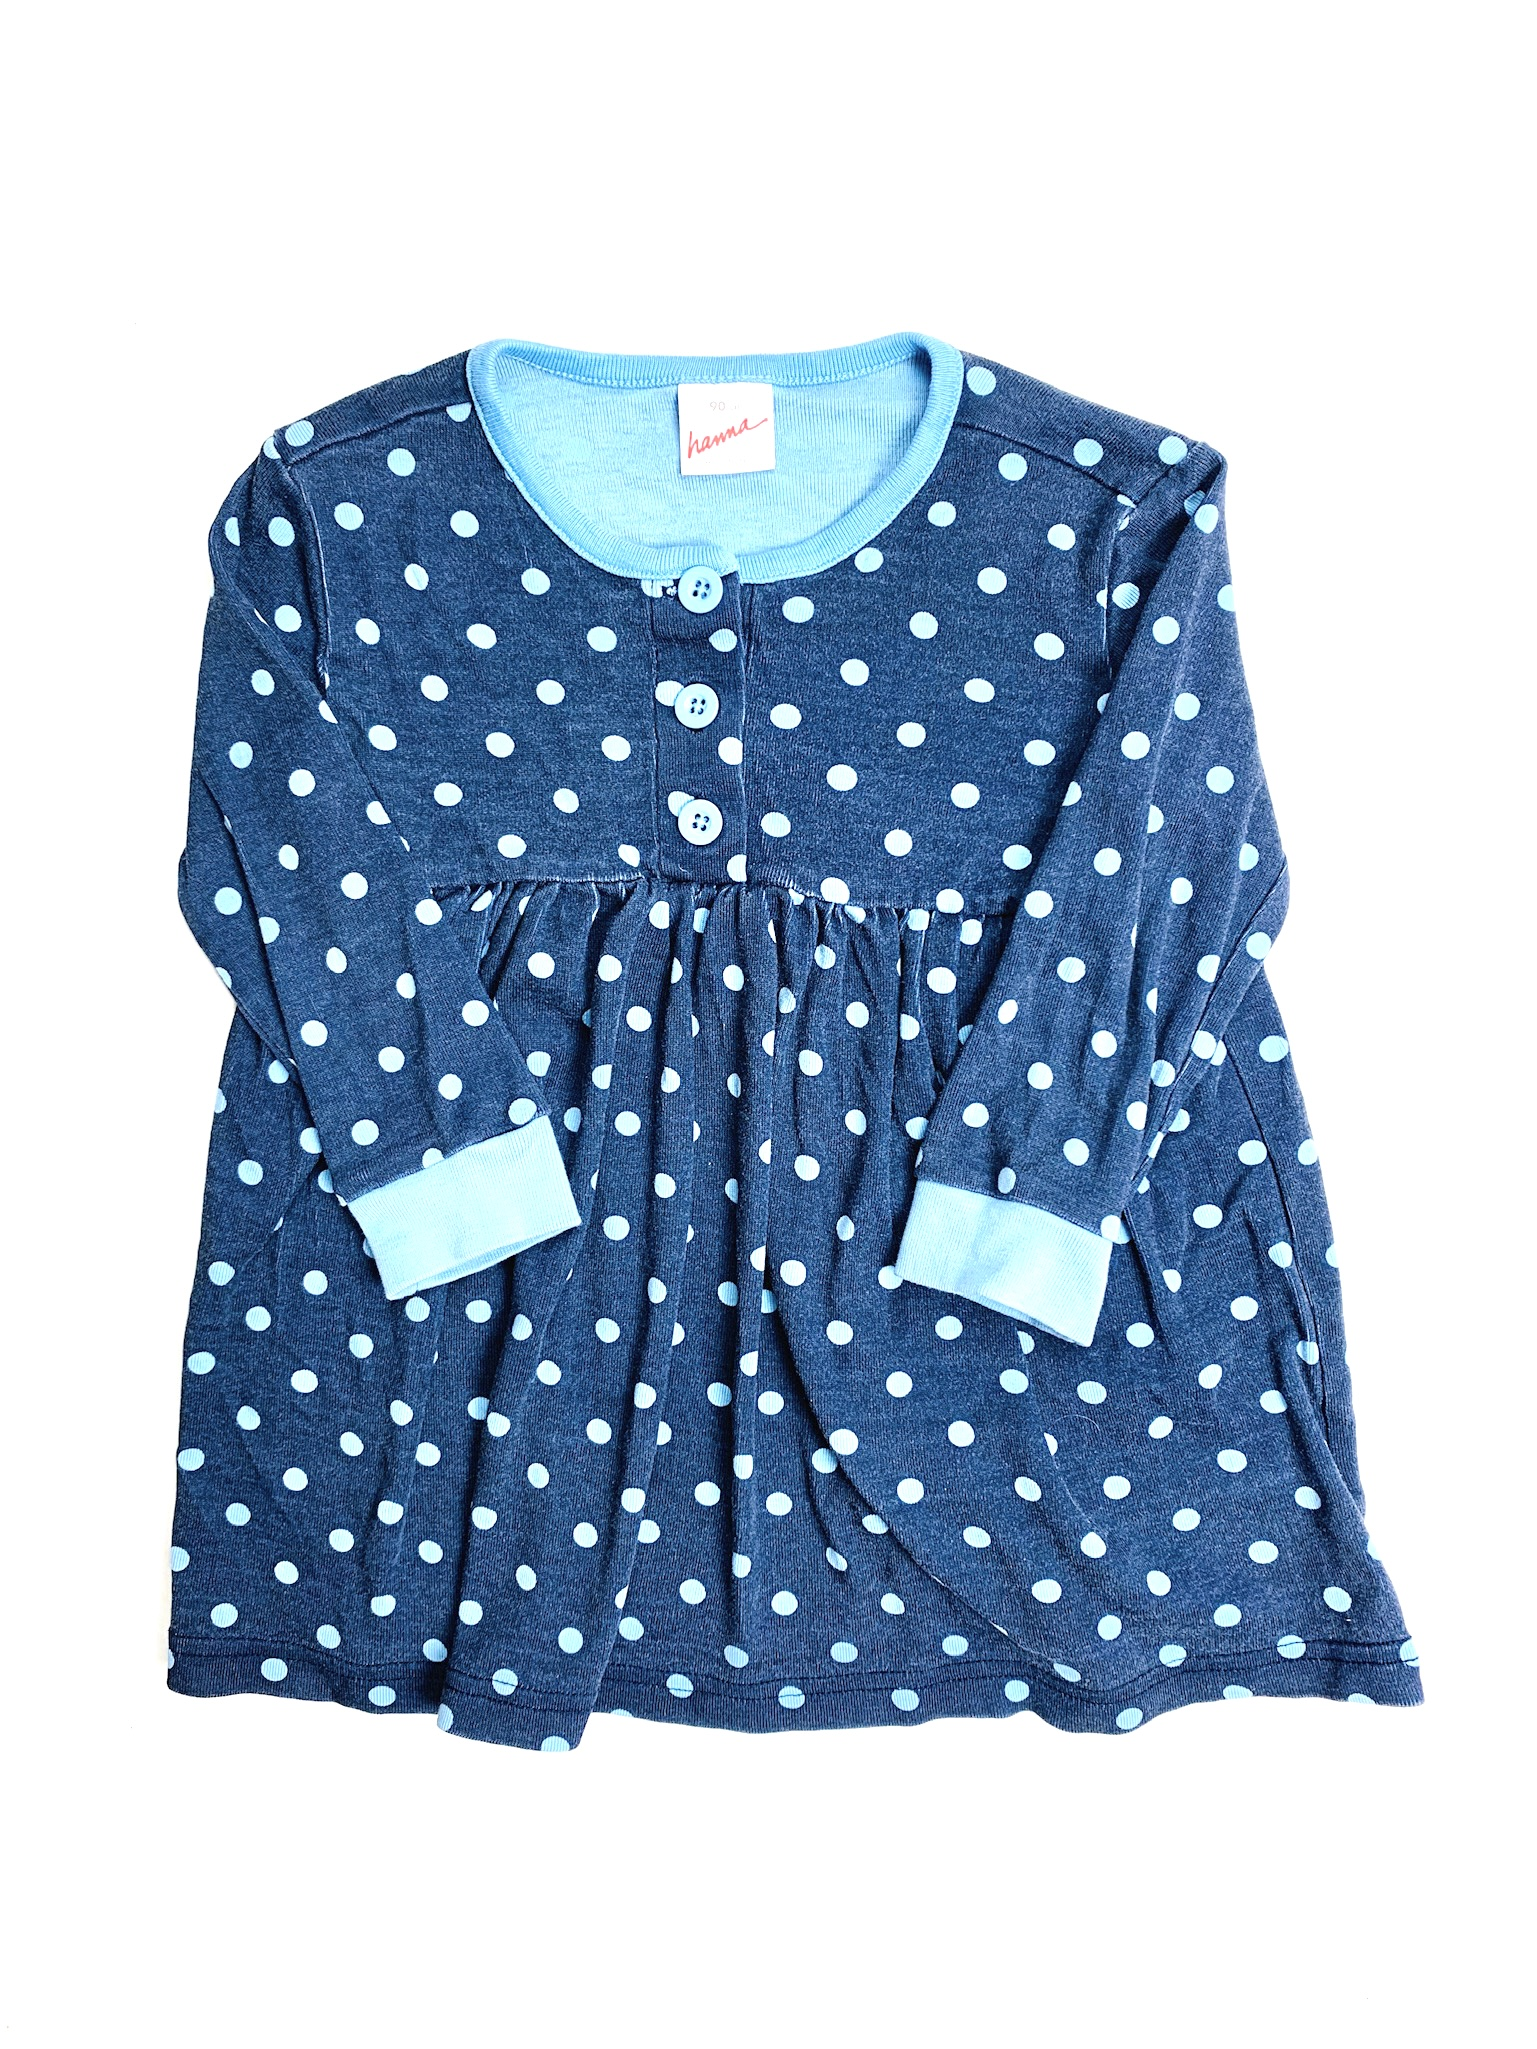 Hanna Andersson 3T Dresses